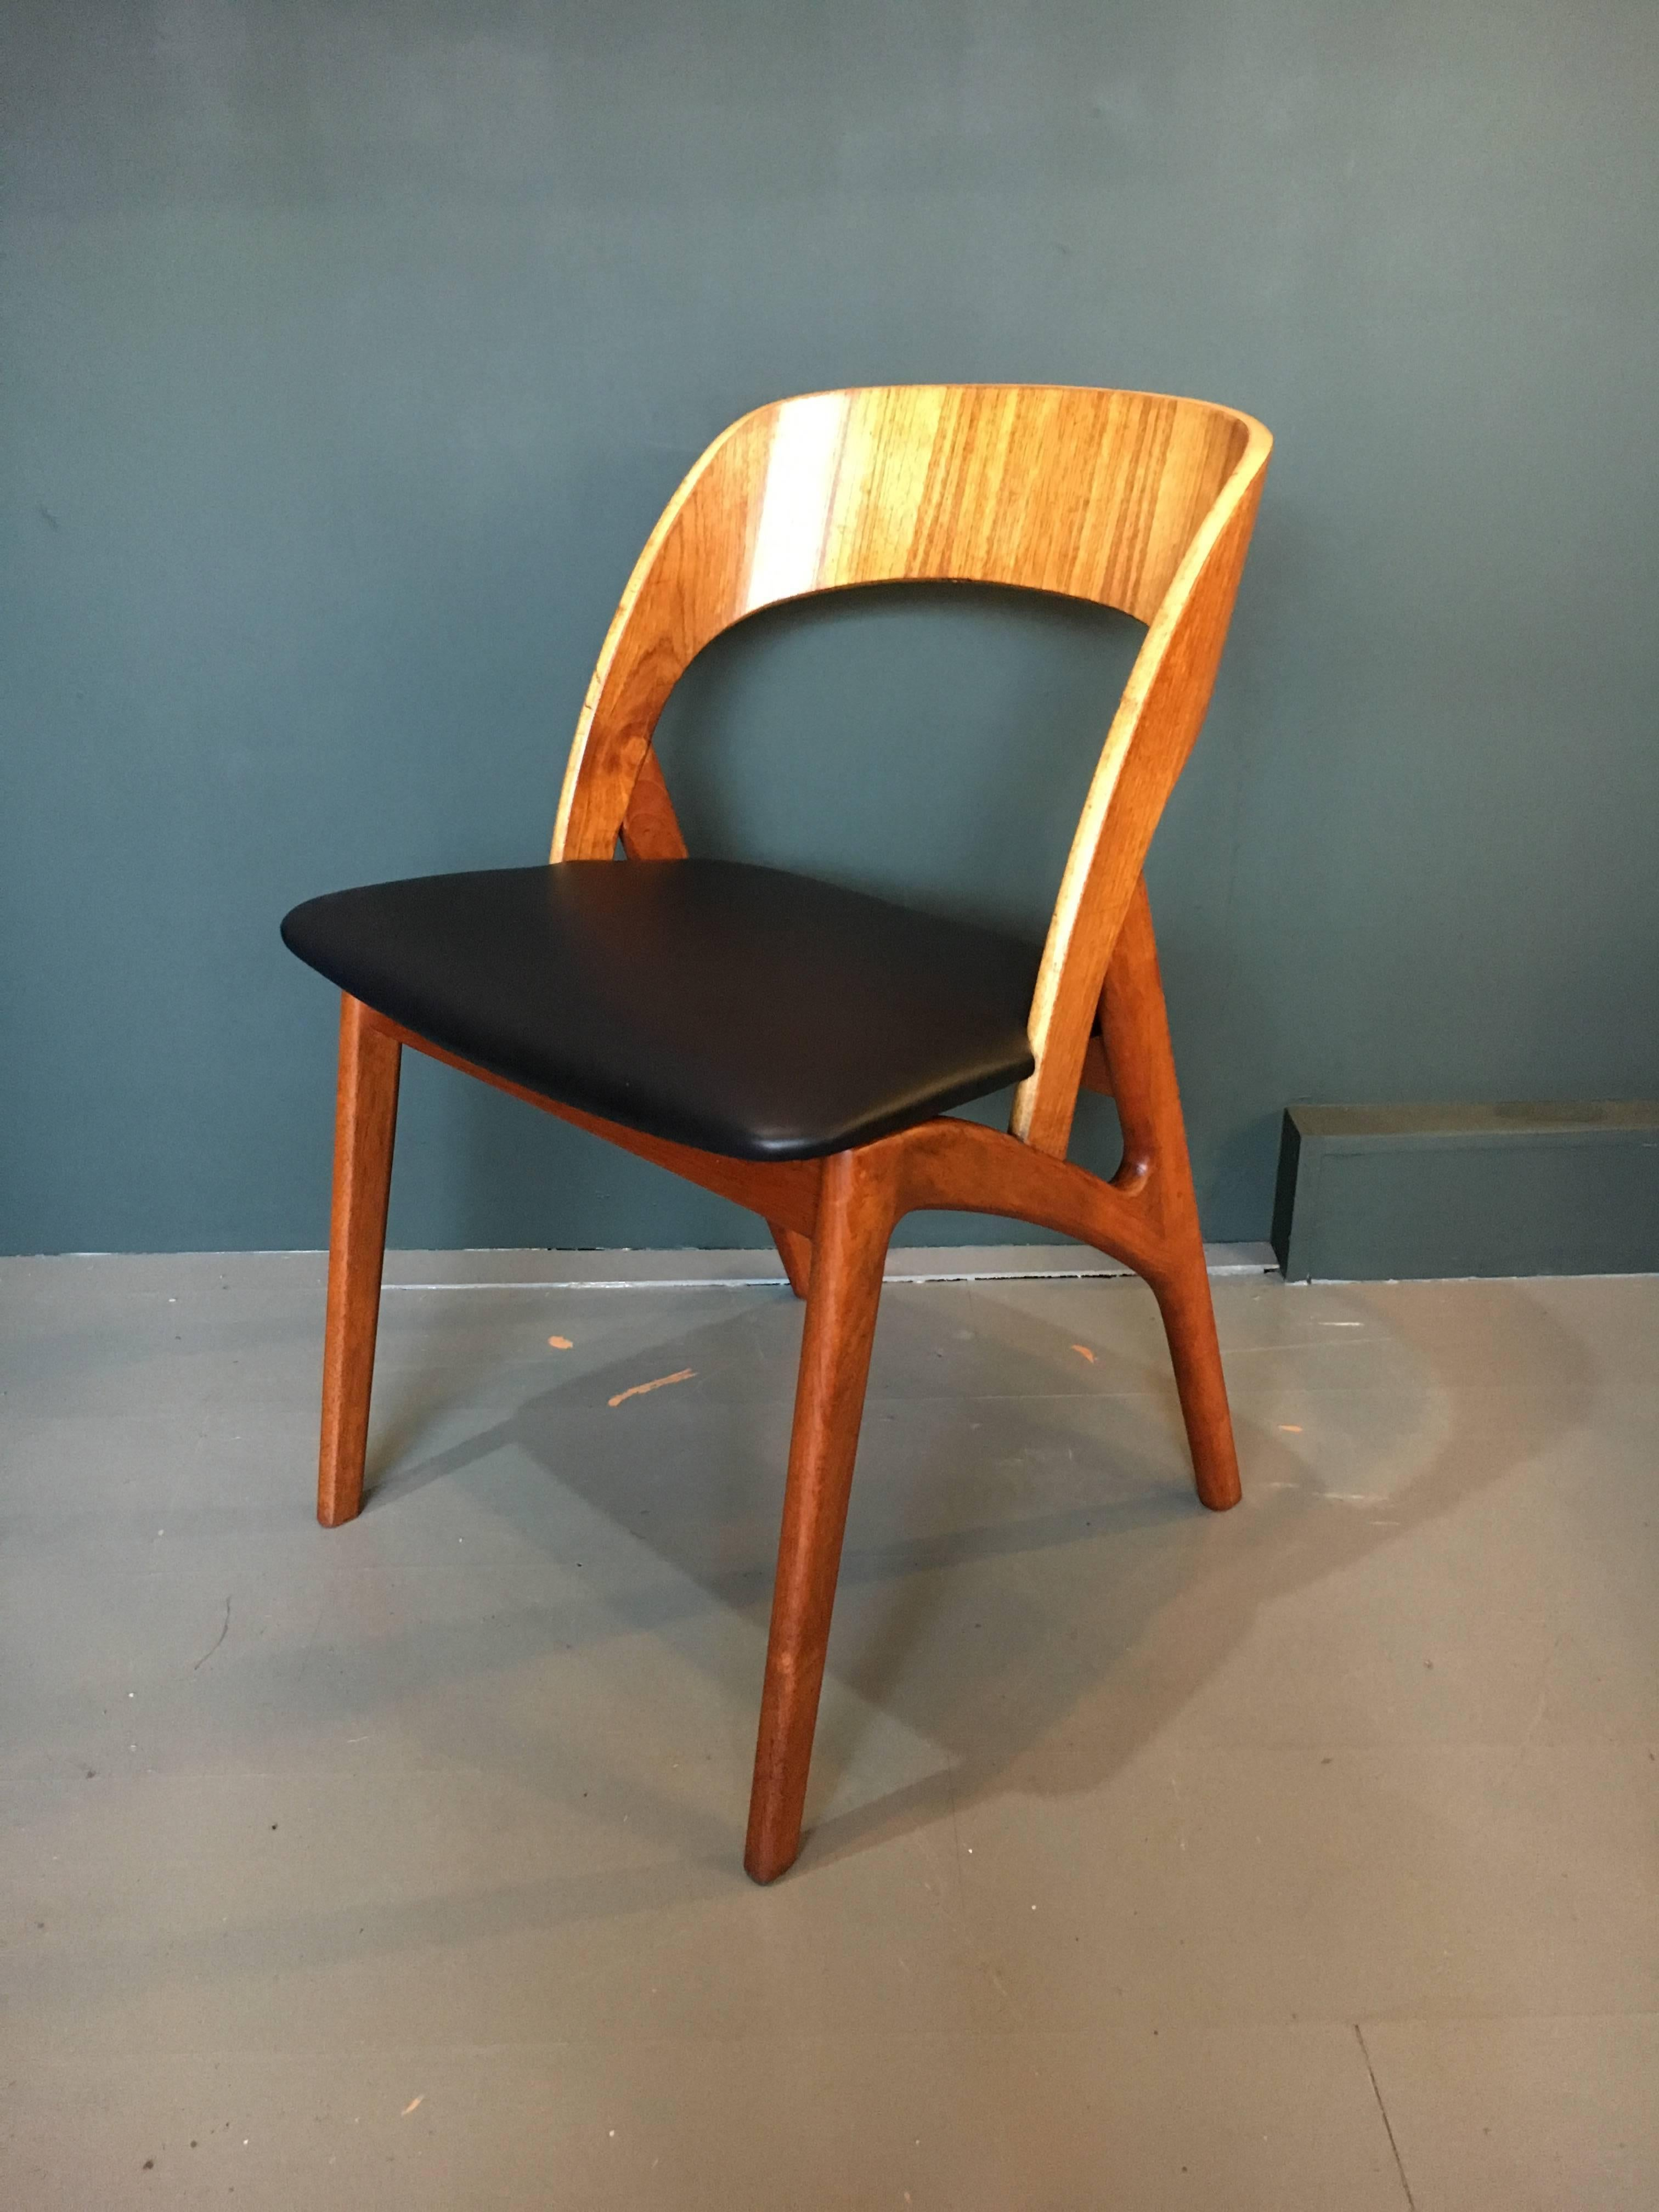 Refurbished Chairs Midcentury Danish Dining Chairs Set Of Eight Refurbished Teak With New Leather